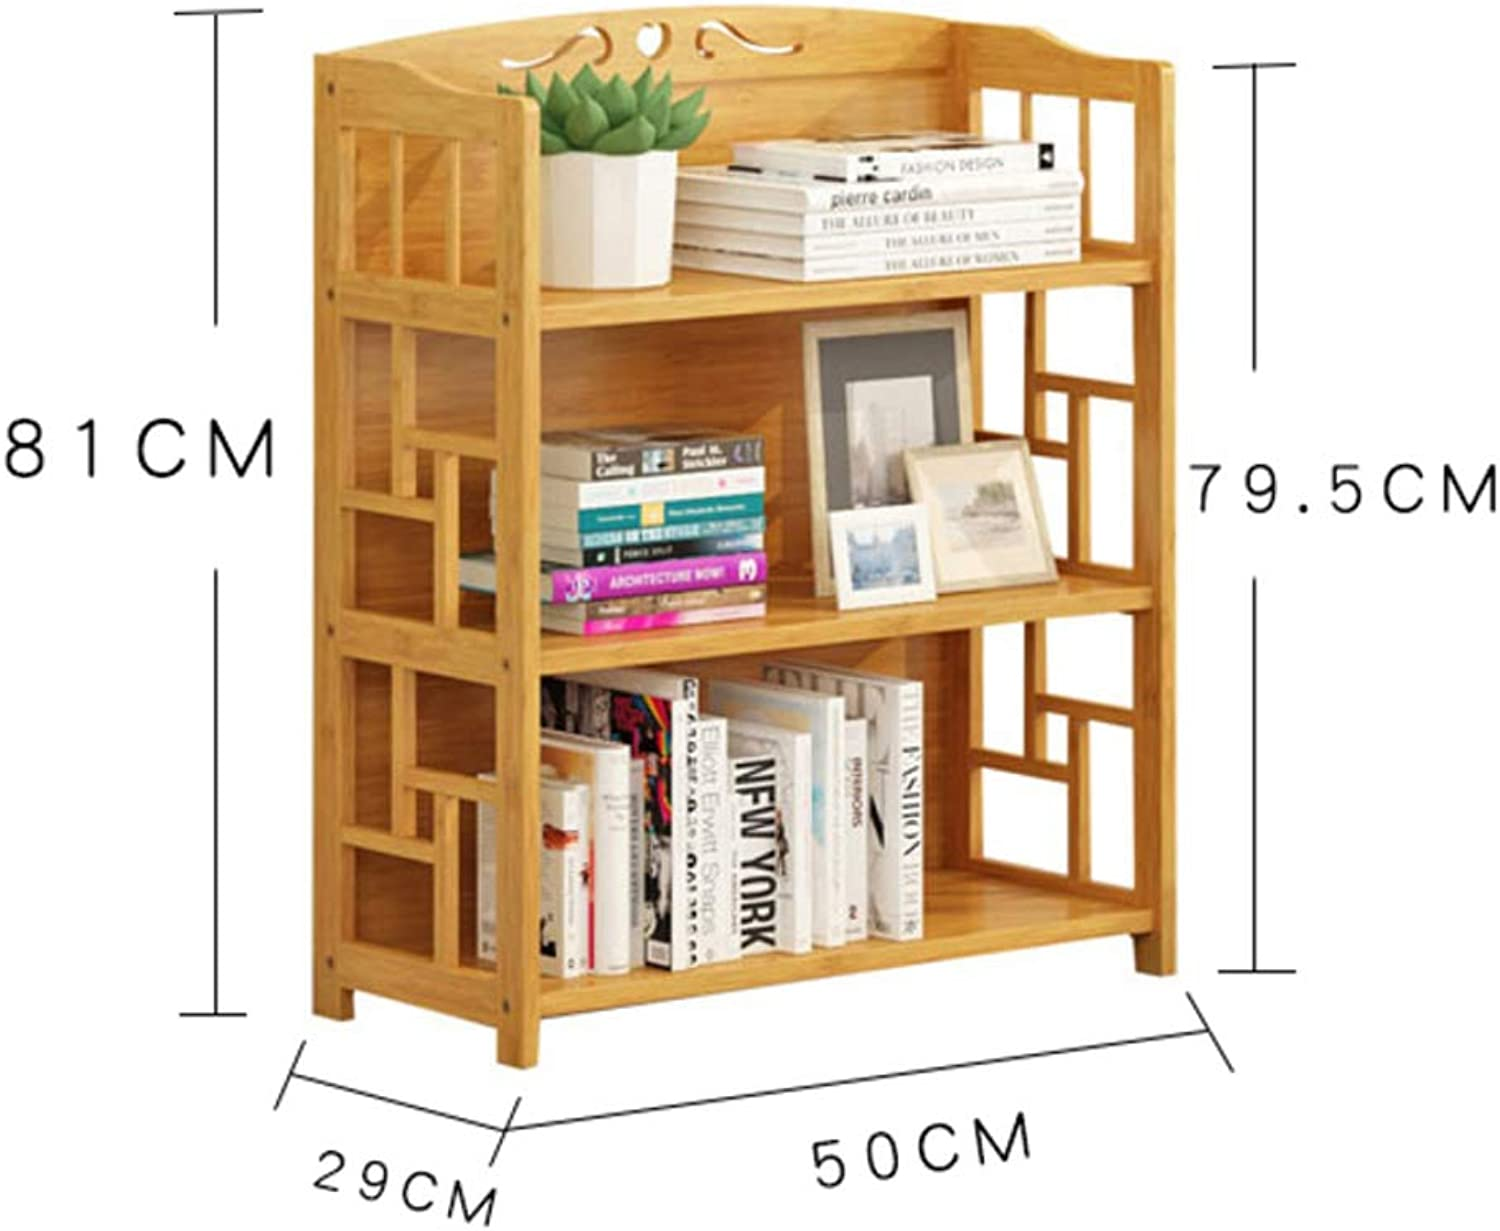 Wooden Bookshelf, Floor Standing Bookcase, Storage Rack Display Shelf Furniture Decoration Easy Assembly for Living Room Office-a 50x29x81cm(20x11x32inch)